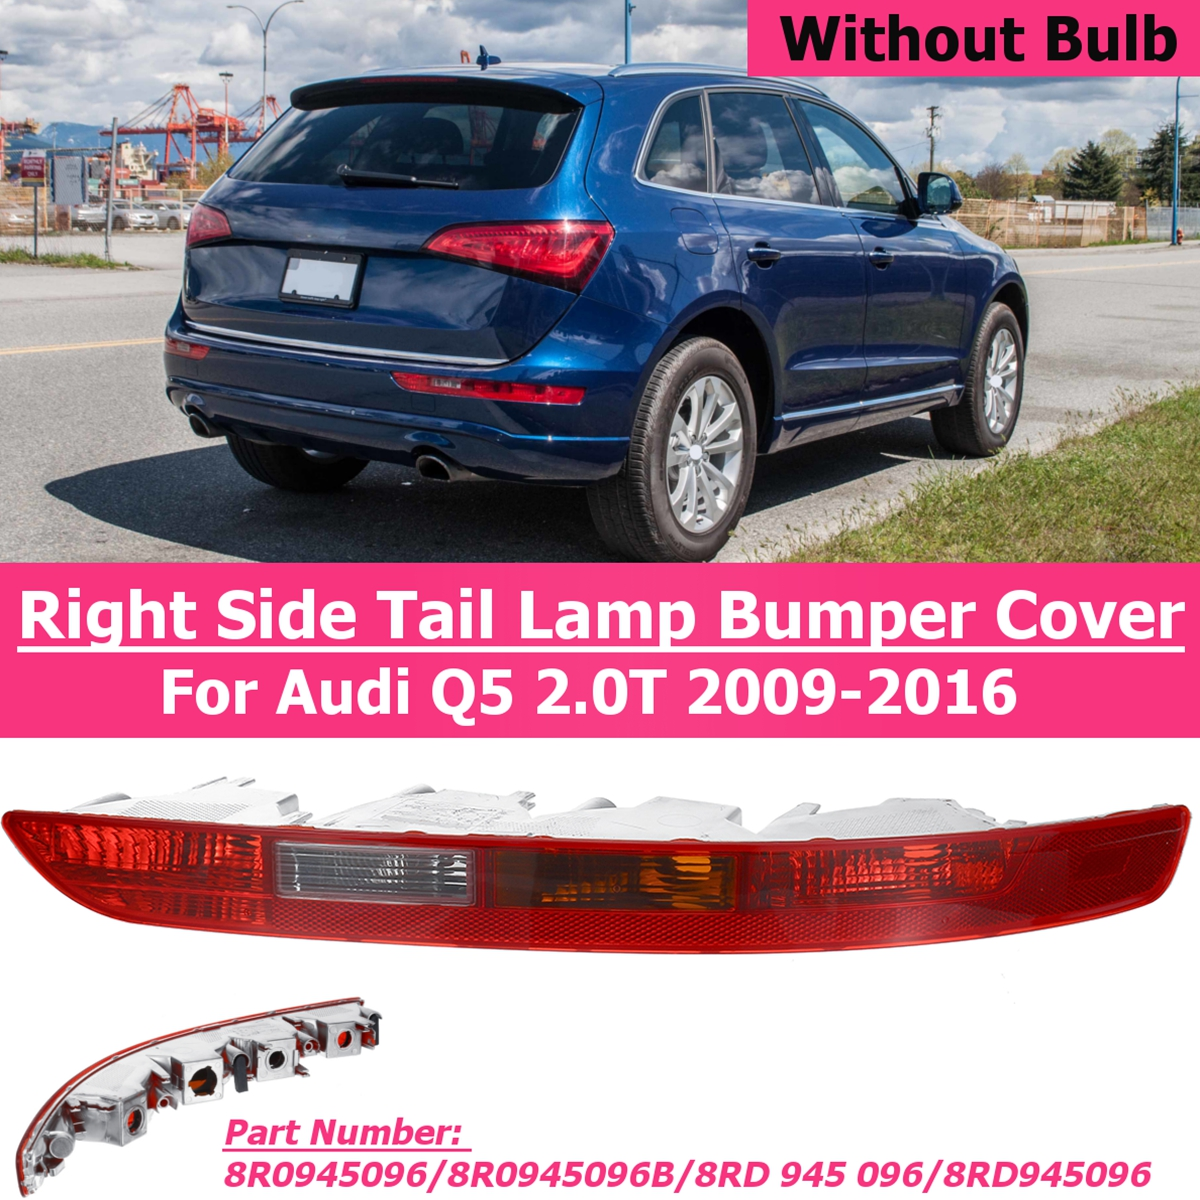 Car Taillight Rear Bumper Tail Light Cover Right Side for Audi Q5 2.0T 2009-2016 8R0945096